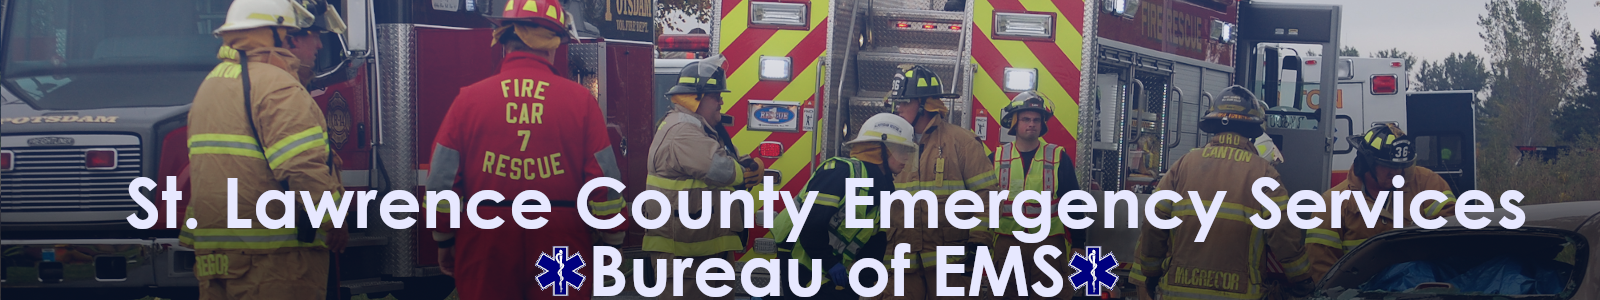 St. Lawrence County Office of Emergency Services Bureau of EMS